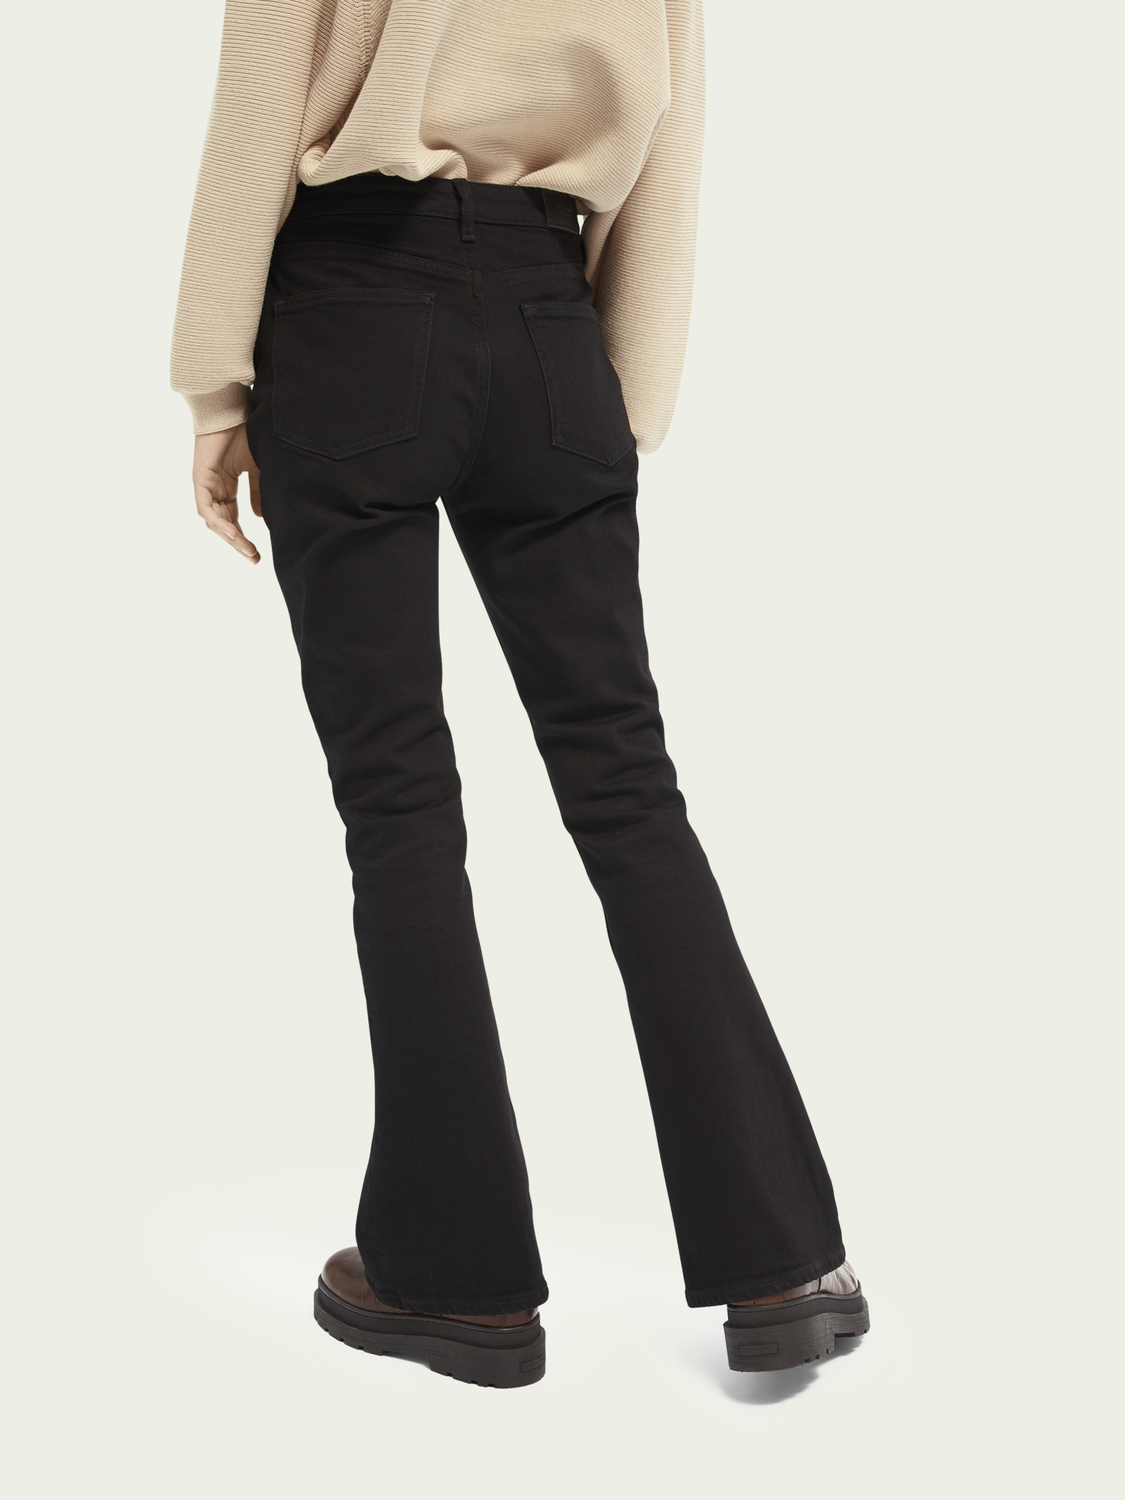 Women The Charm high-rise flared organic cotton jeans - Black Shadow